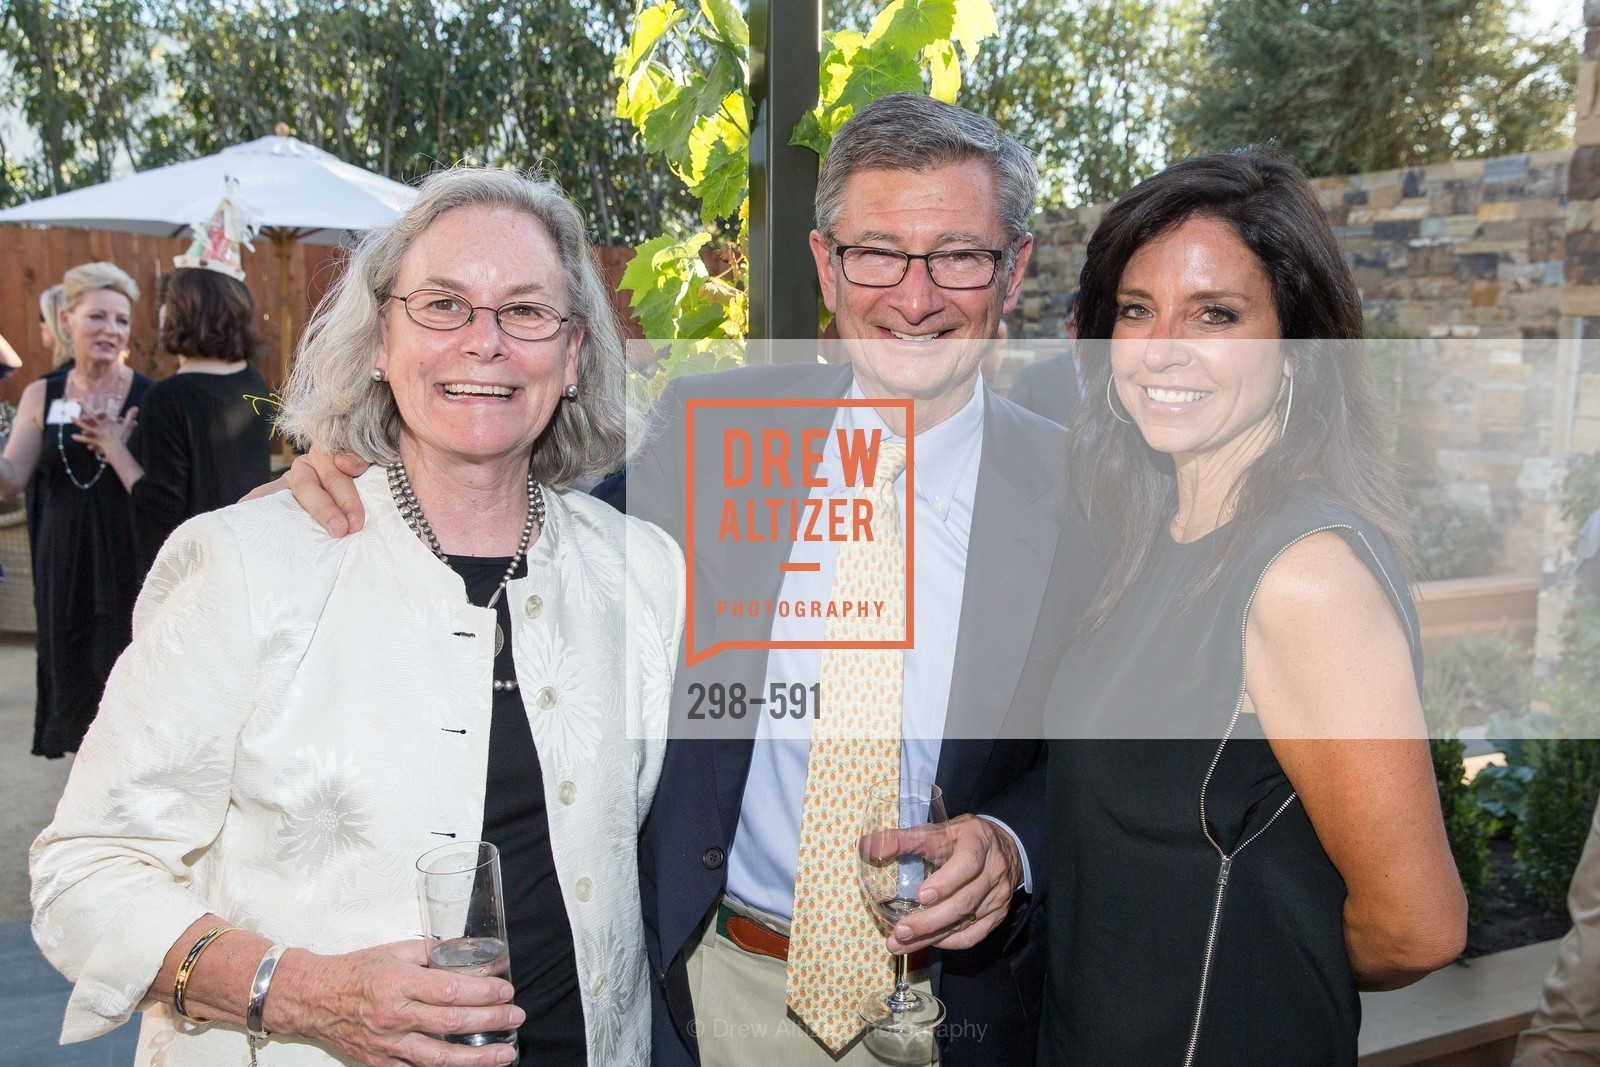 Ginger Connolly, Pat Connolly, Janice Greenwood, CHUCK WILLIAMS Birthday Celebration, US, October 2nd, 2014,Drew Altizer, Drew Altizer Photography, full-service agency, private events, San Francisco photographer, photographer california